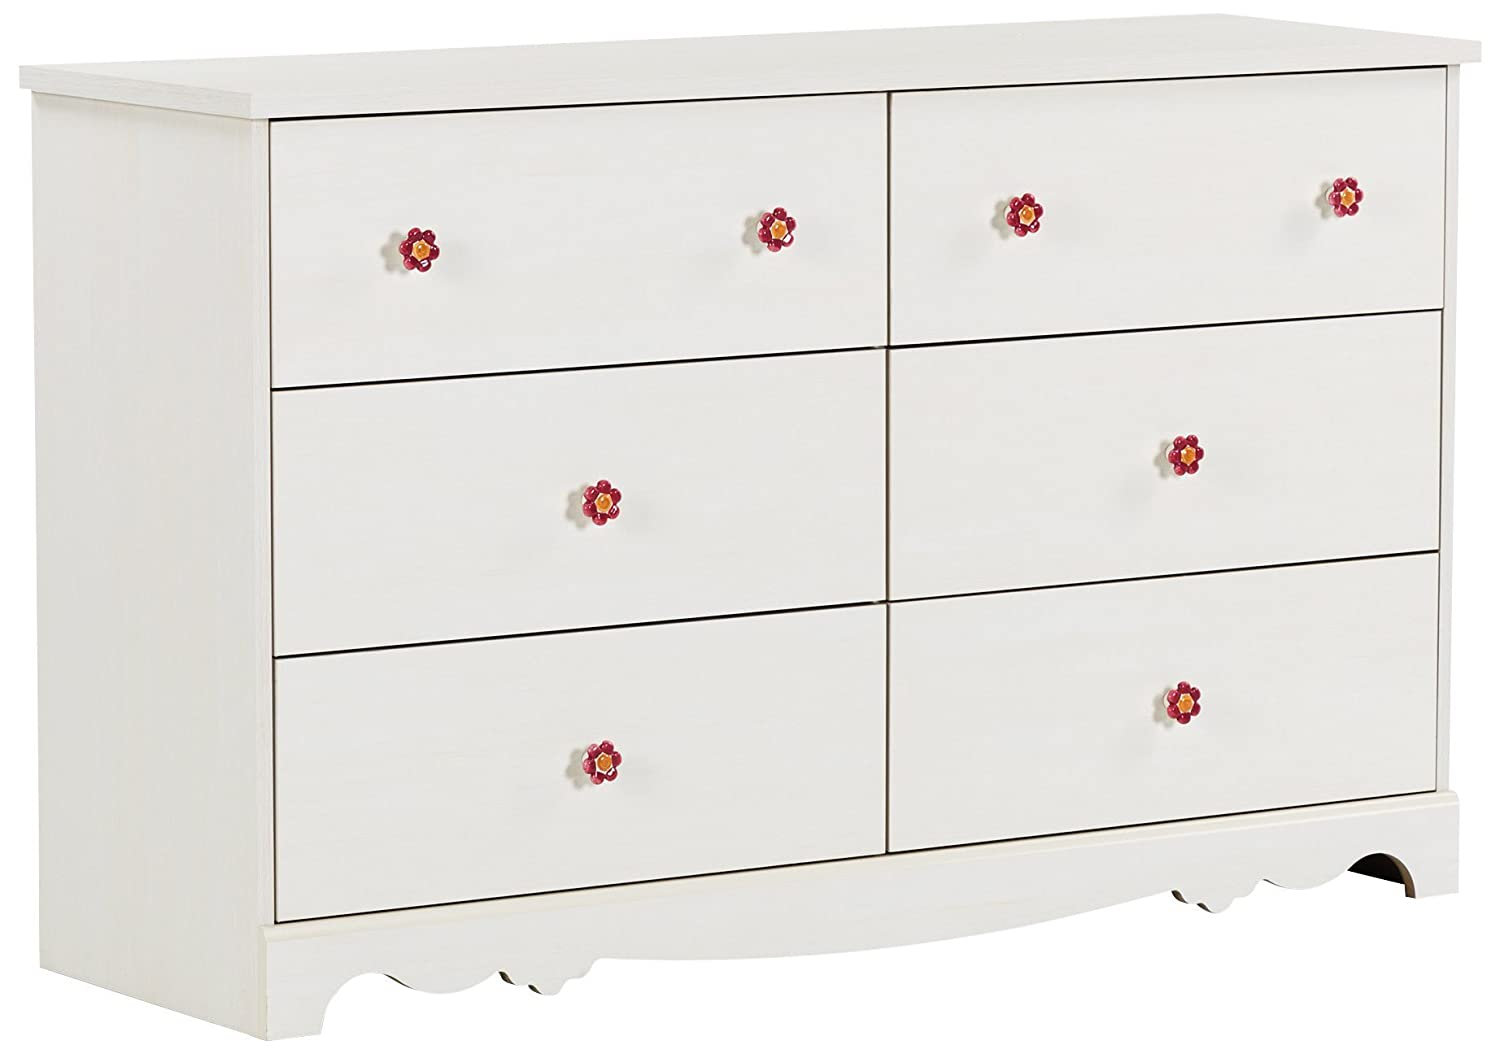 South Shore Furniture Lily Rose 6-Drawer Double Dresser, White Wash 10078